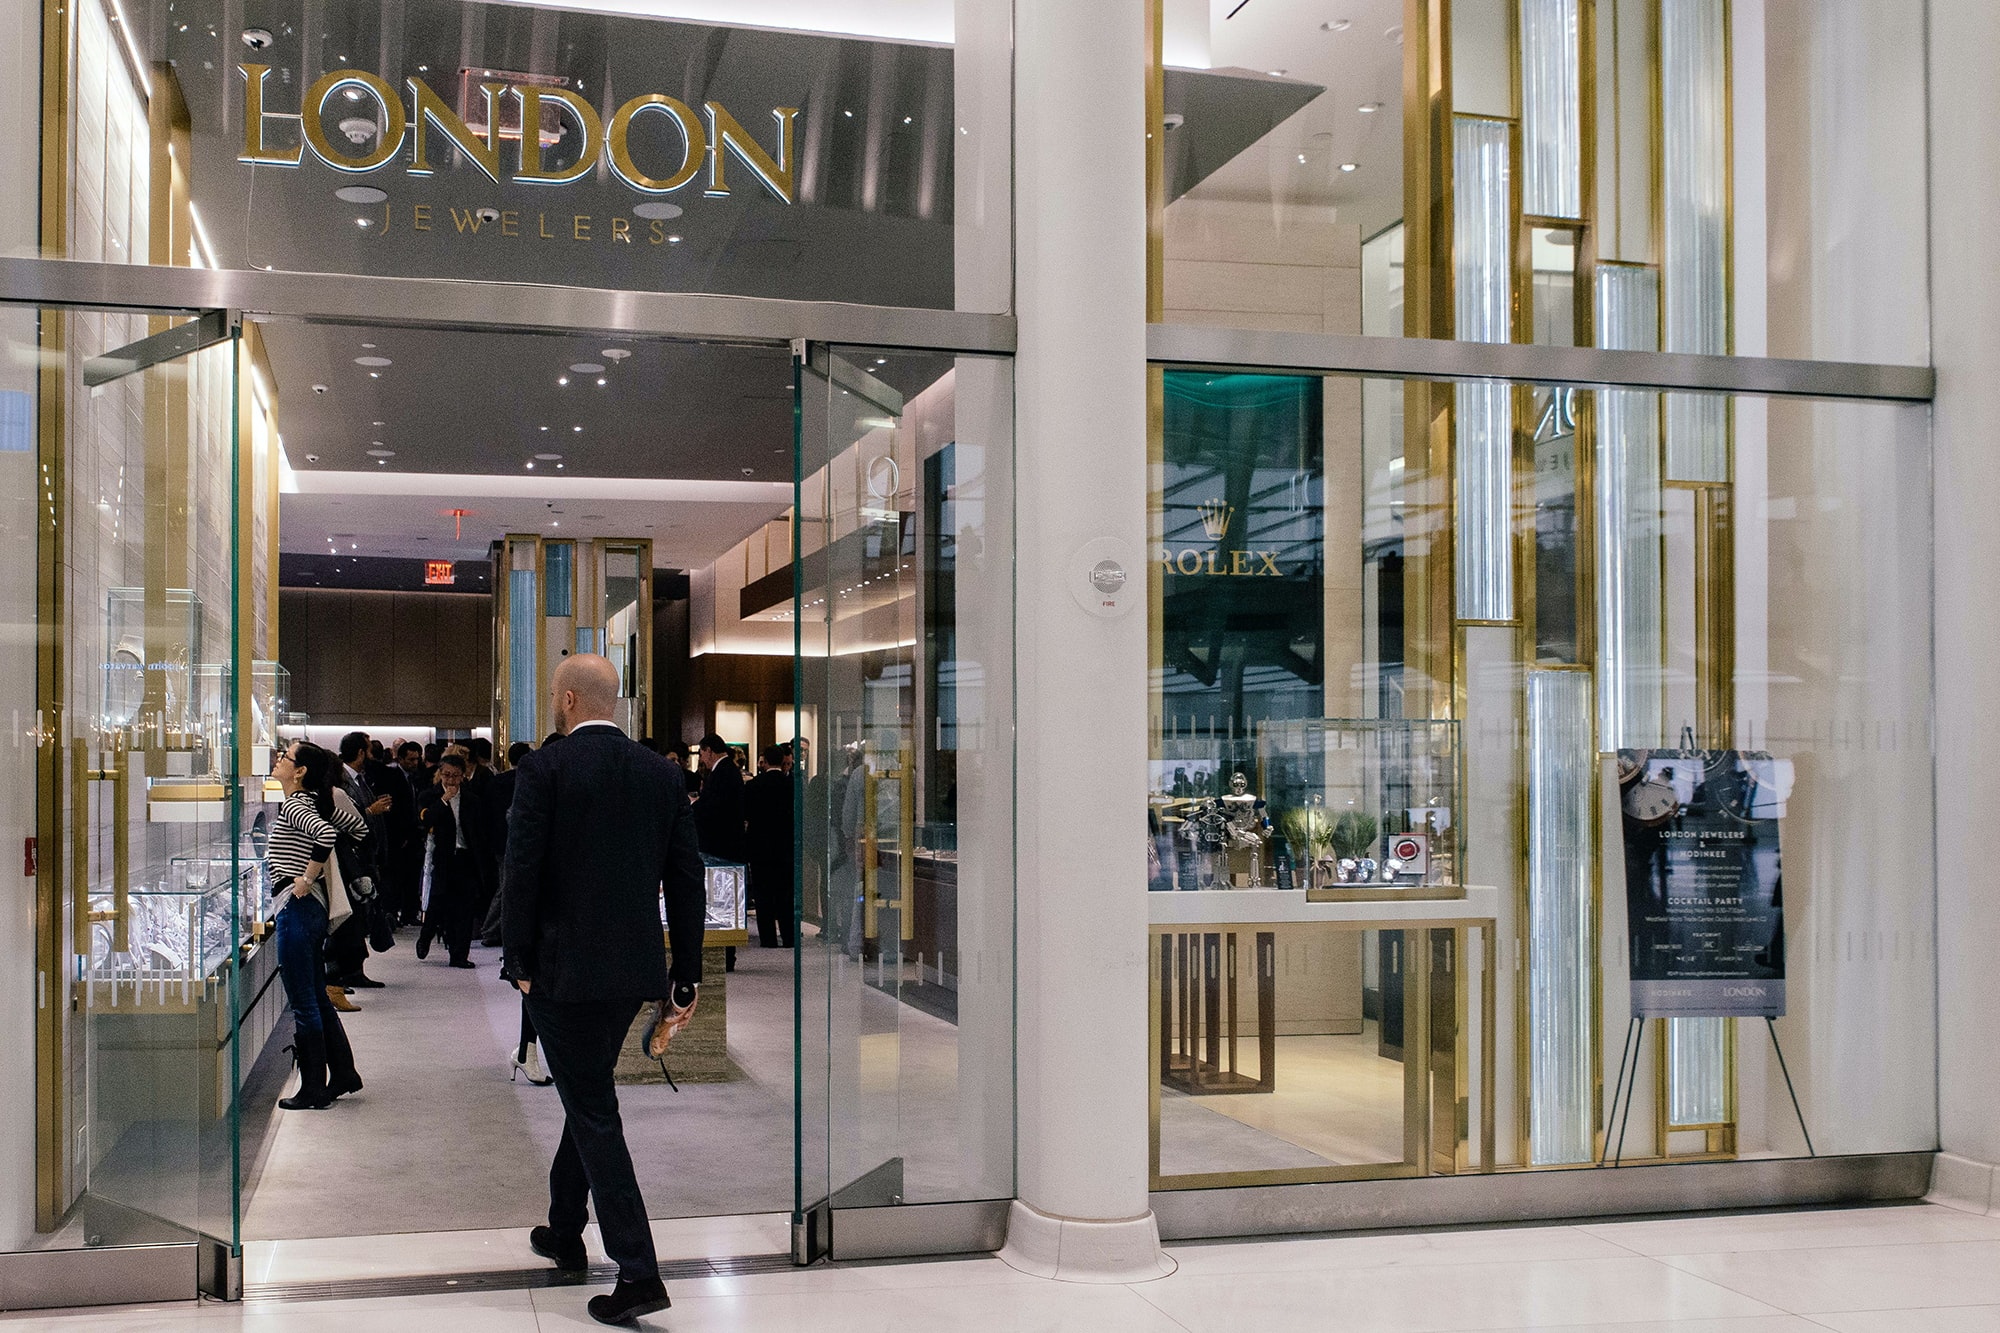 Photo Report: HODINKEE Celebrates London Jewelers' New Store In New York City's Oculus Photo Report: HODINKEE Celebrates London Jewelers' New Store In New York City's Oculus 20161109 LondonJewelersxHodinkee 111